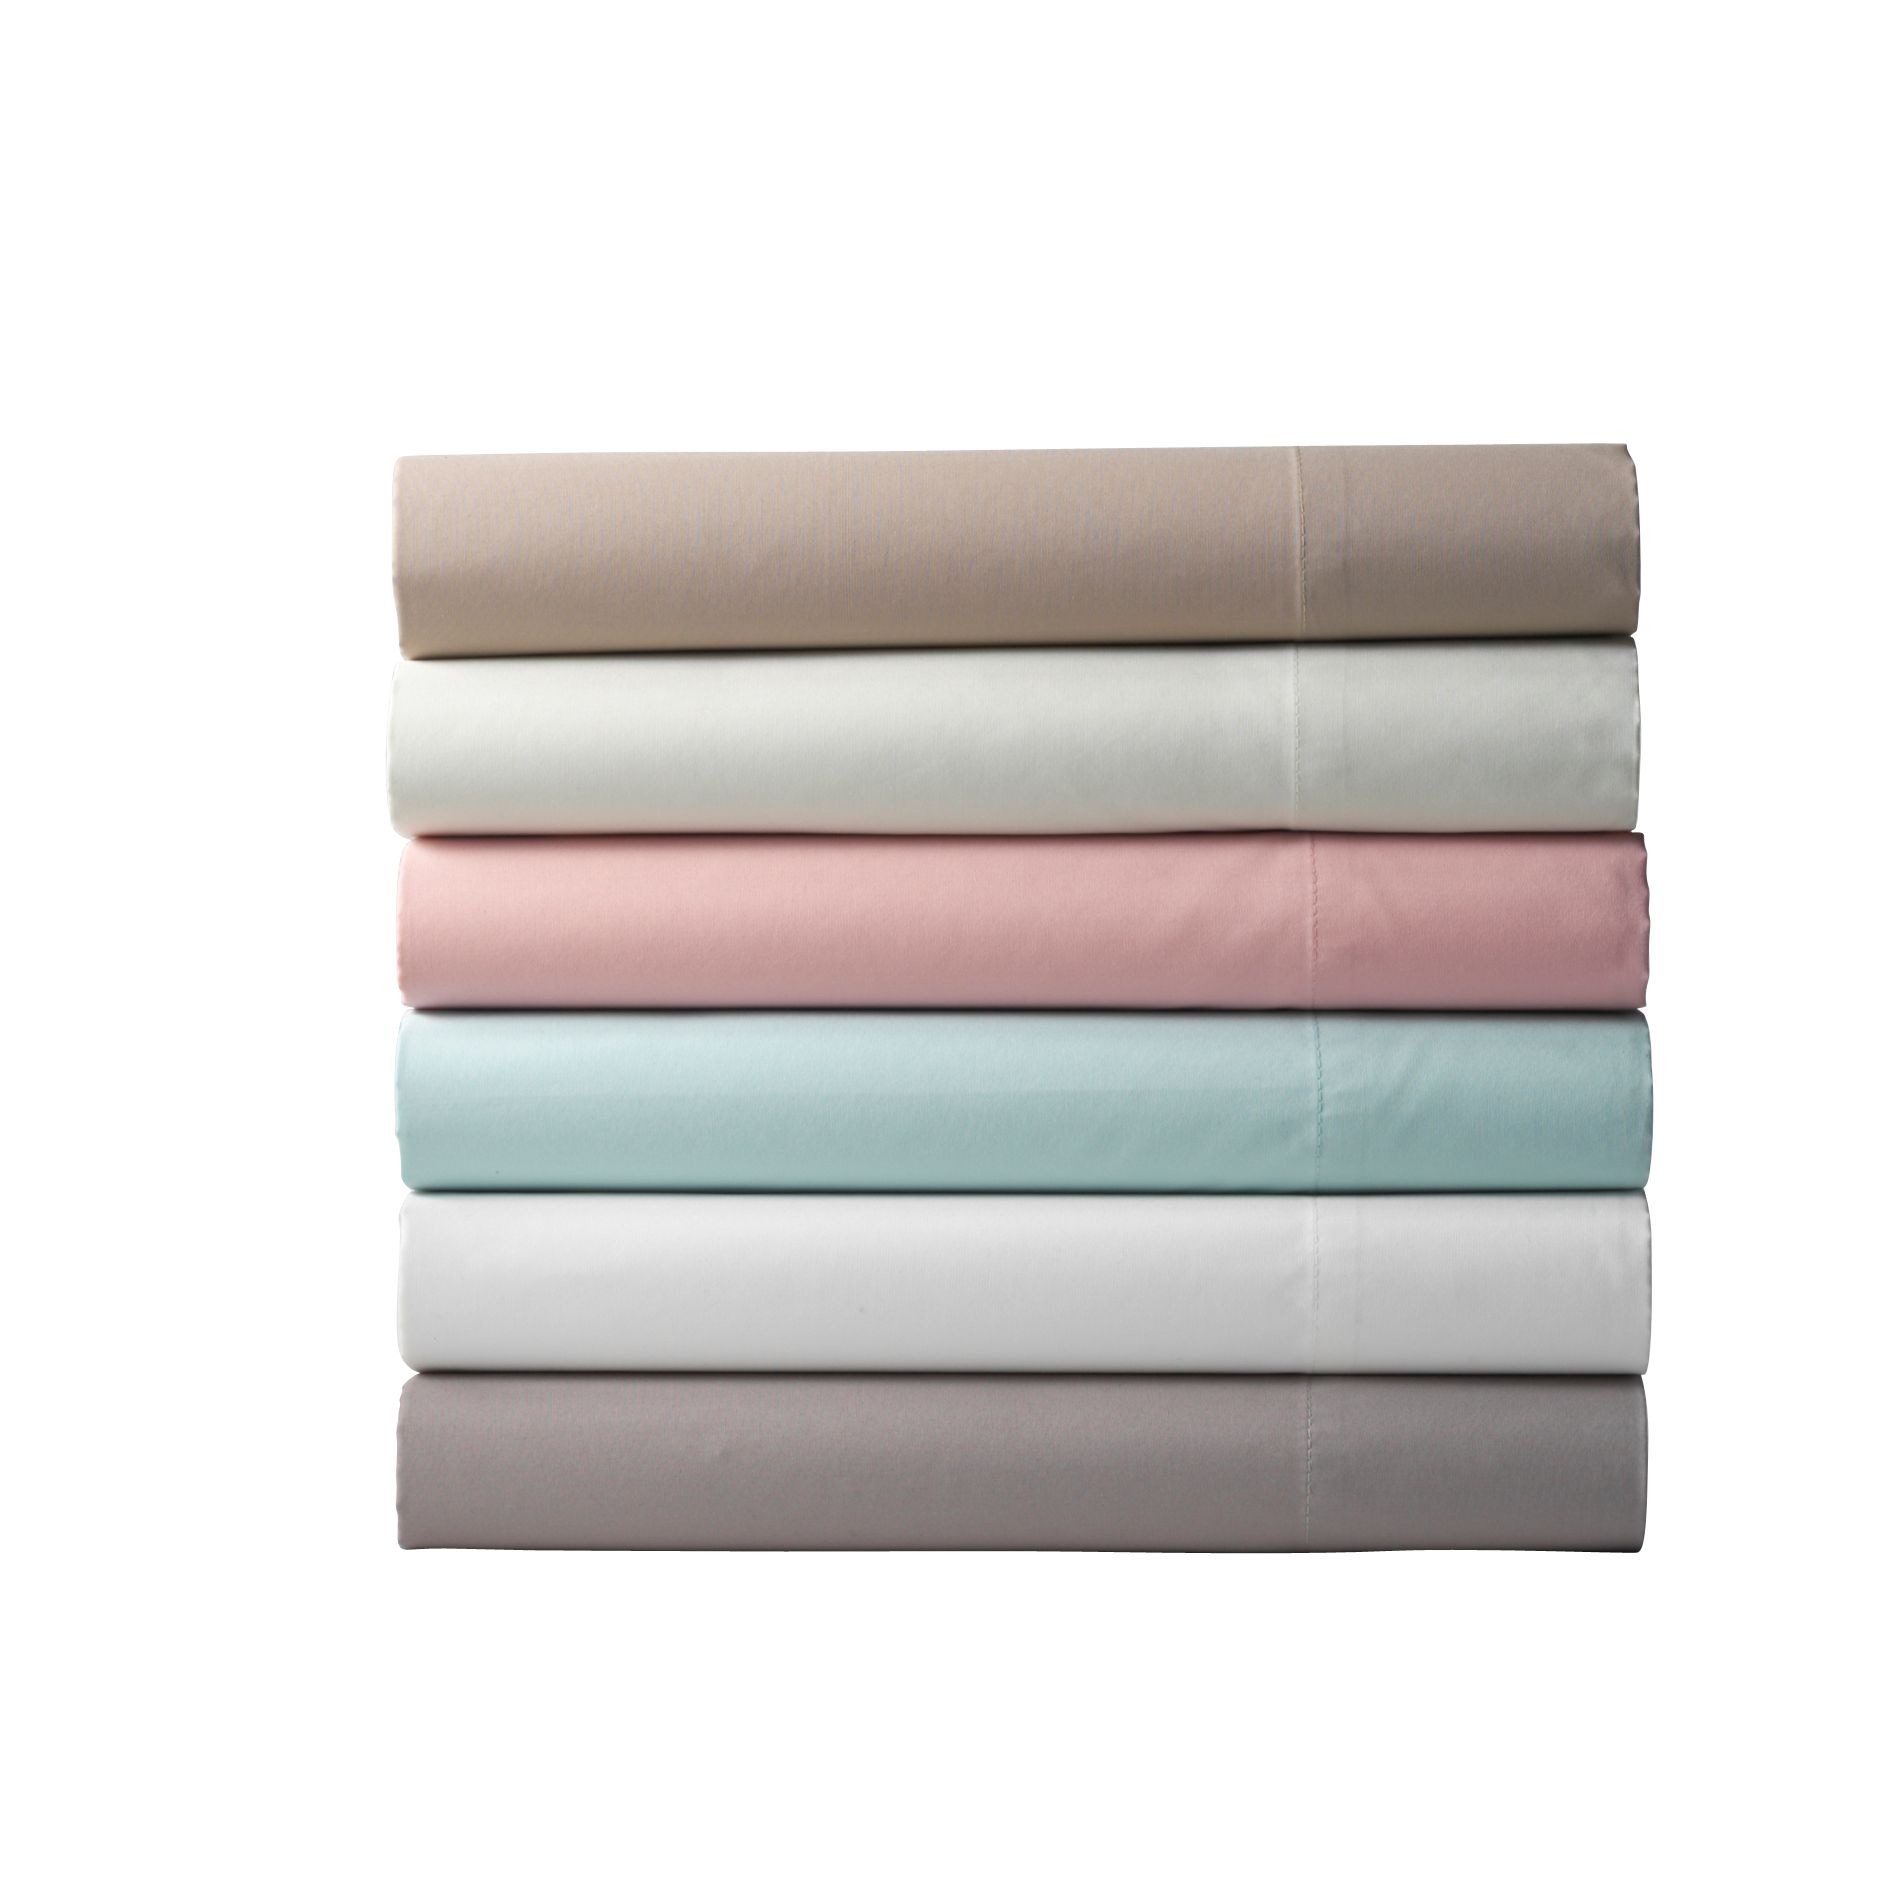 300 Thread Count Wrinkle Free Sheet Set